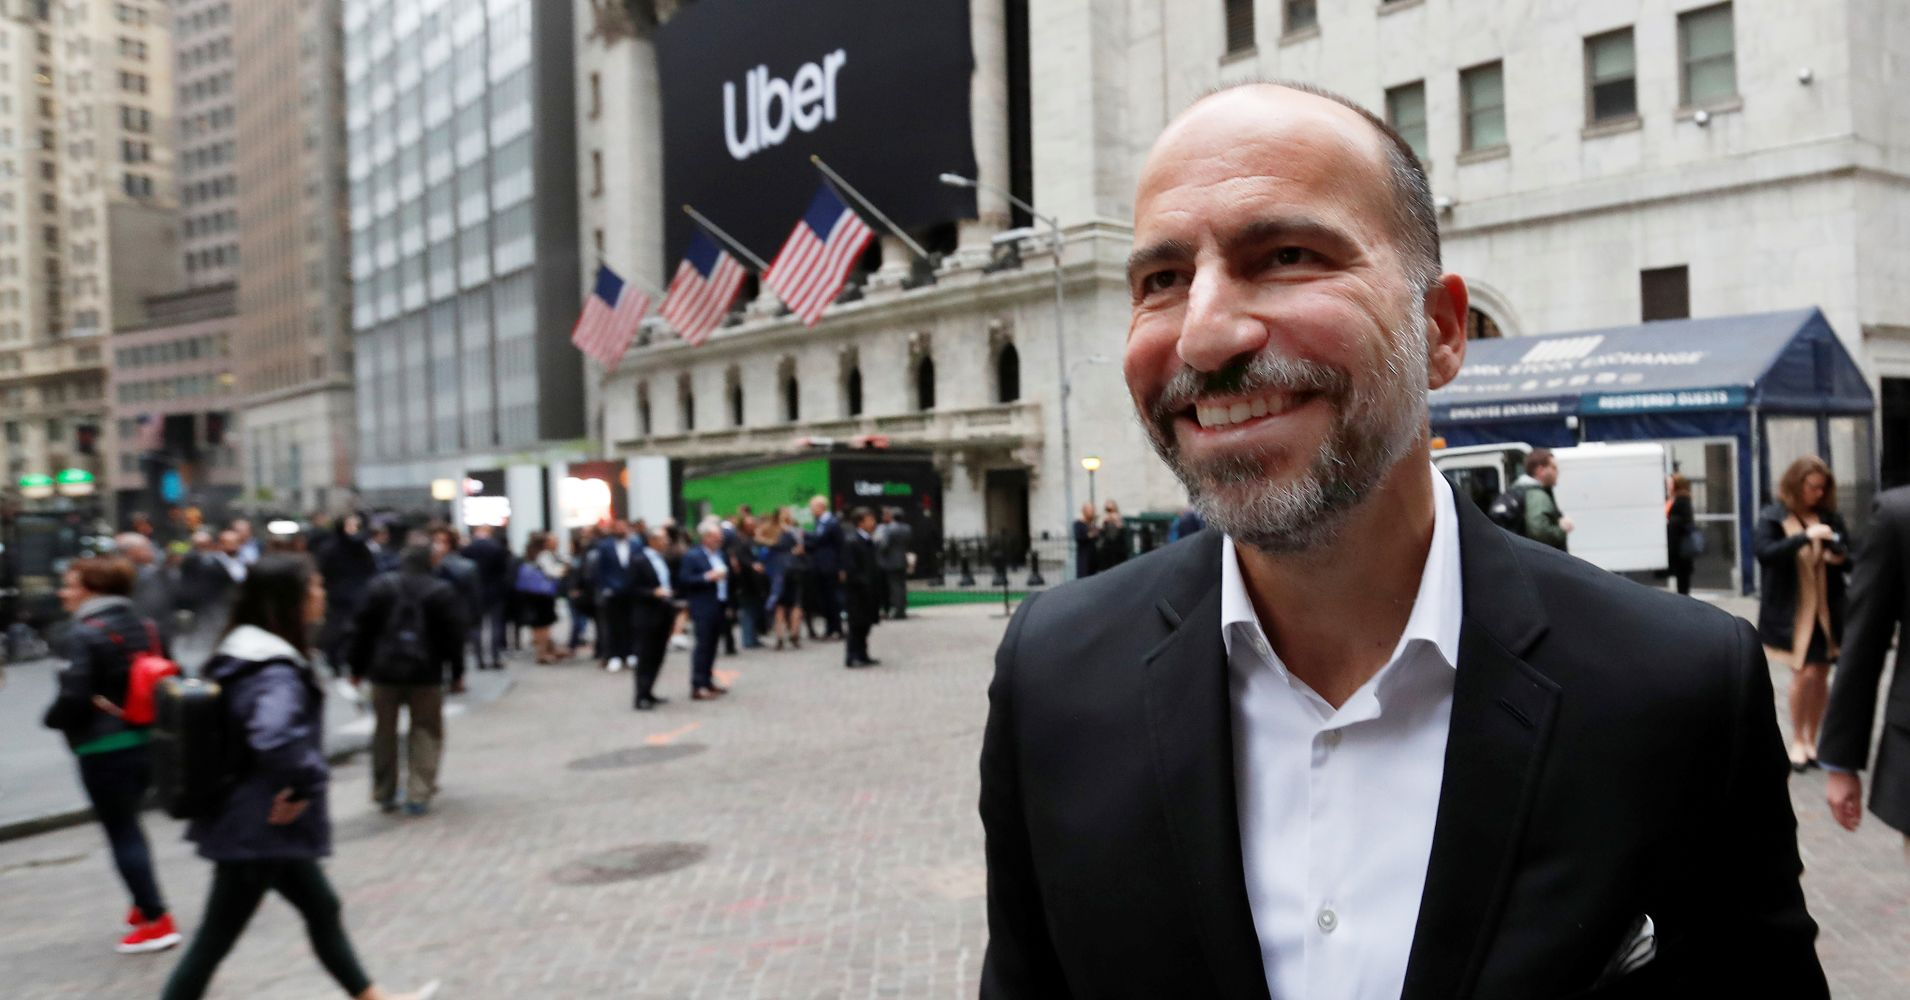 Uber Technologies CEO Dara Khosrowshahi stands outside the New York Stock Exchange ahead of the company's IPO May 10, 2019.